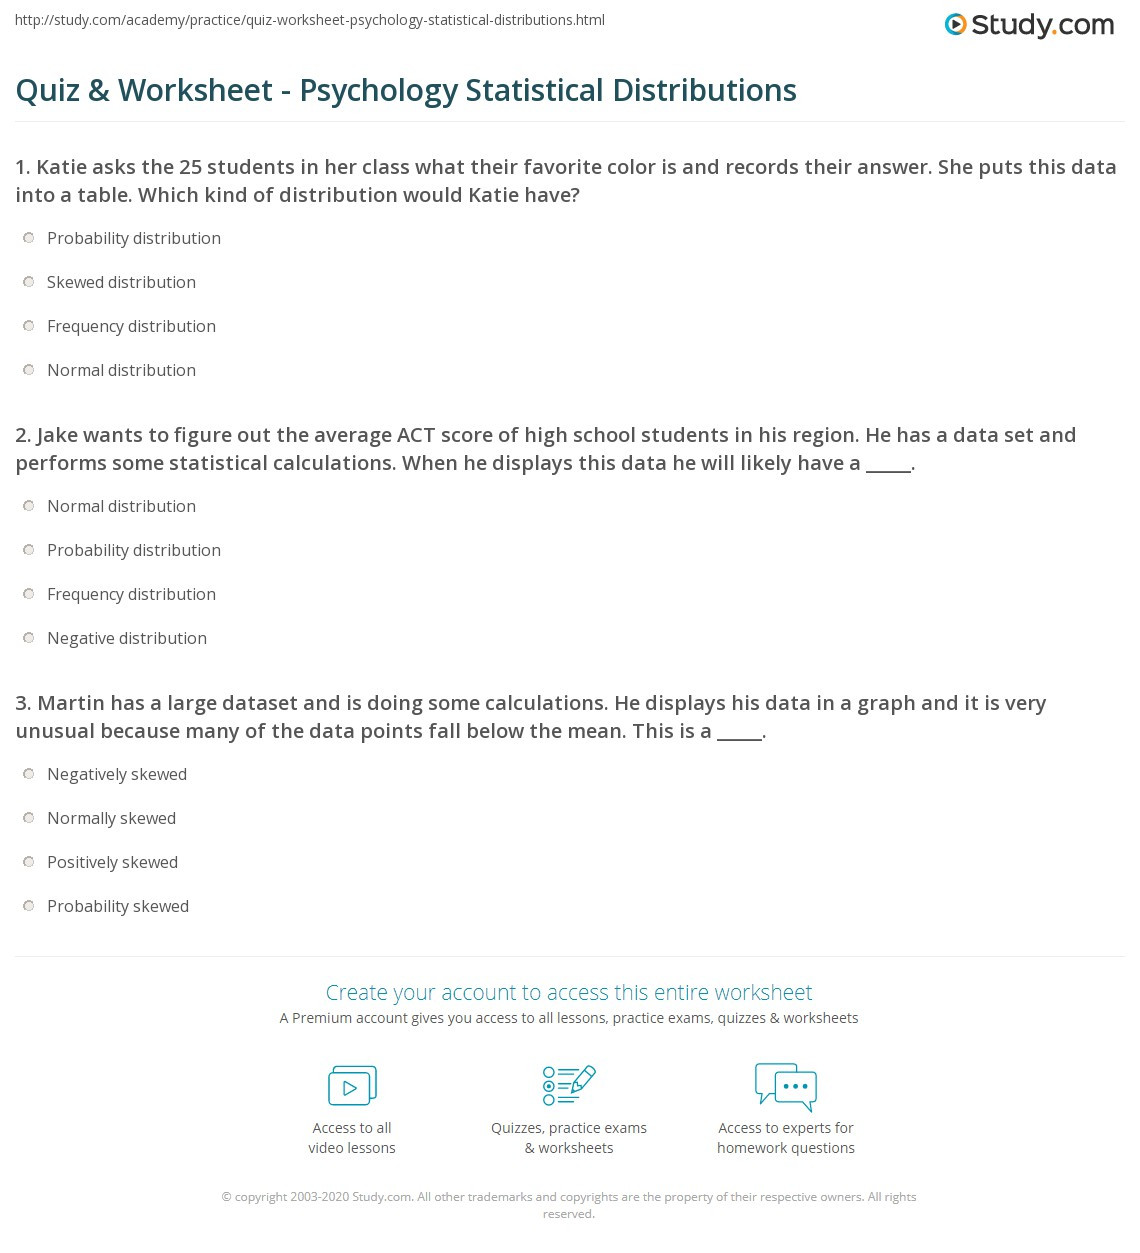 Psychology Worksheets for Highschool Students Quiz & Worksheet Psychology Statistical Distributions